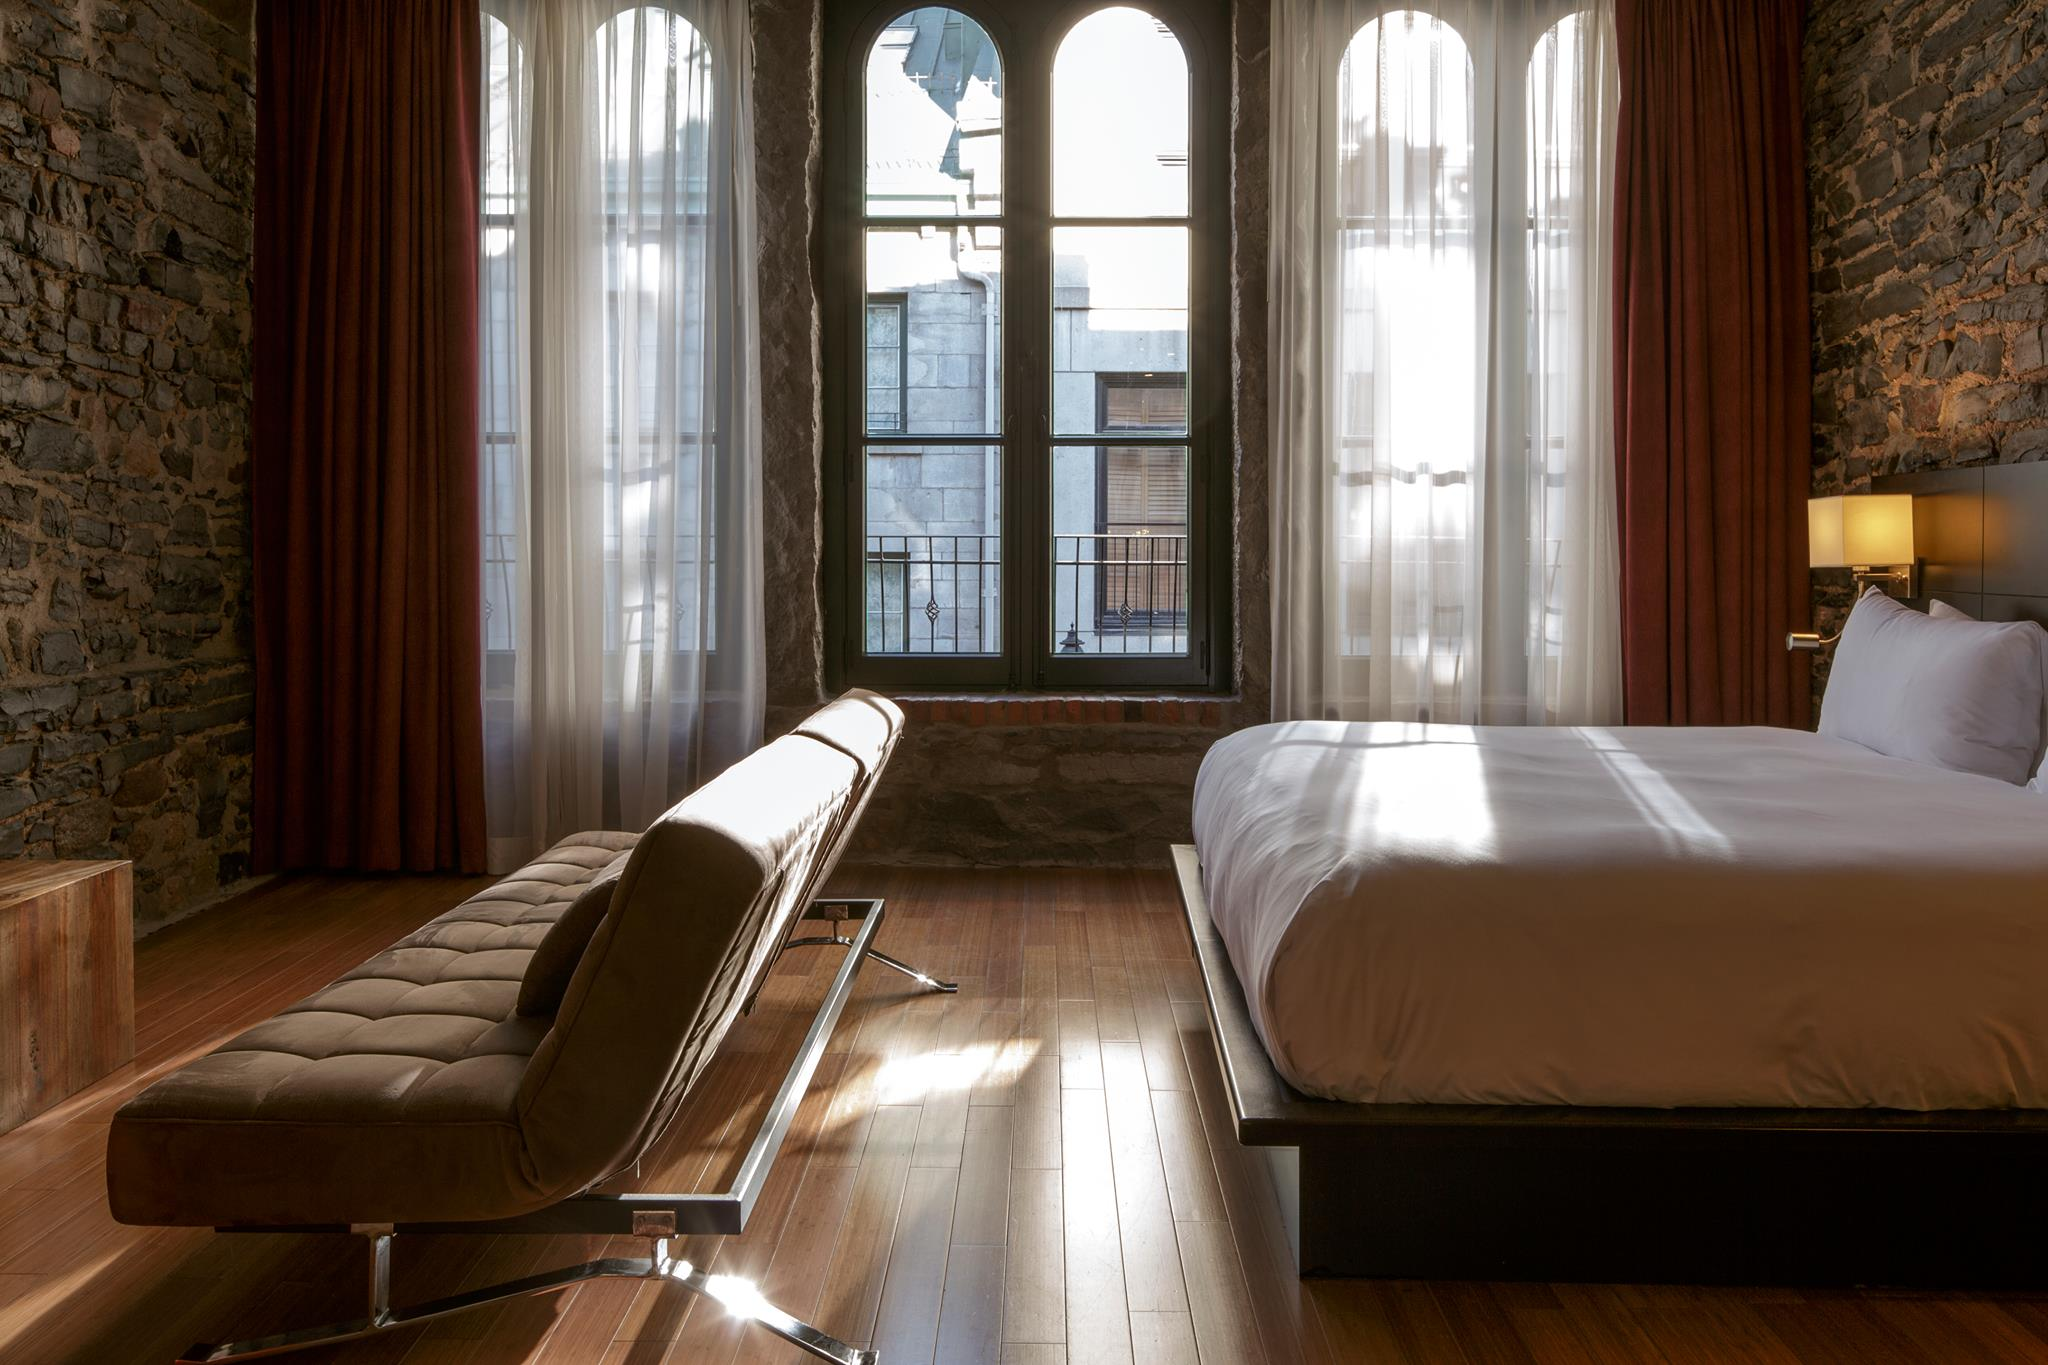 Le Petit Hôtelbedroom of boutique hotels in montreal with old exposed wlla and city view